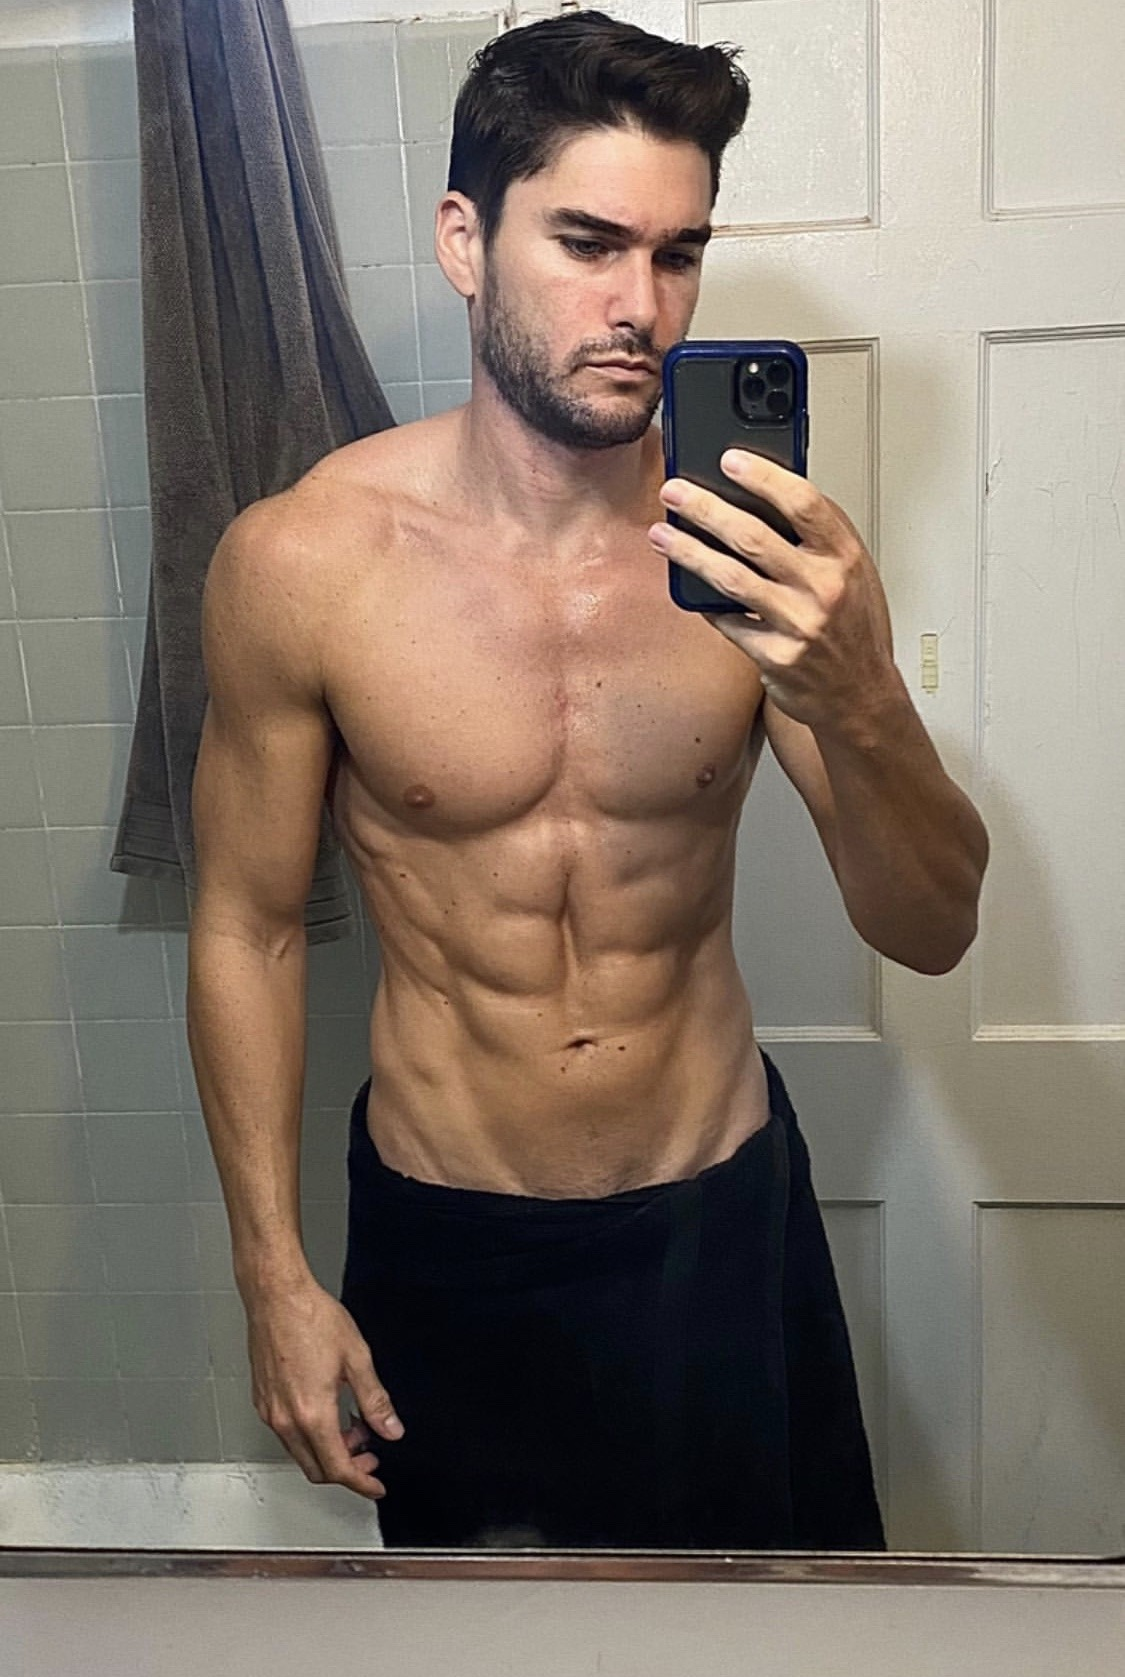 Charlie Matthews #Charlie Matthews#Mirror Selfie#Shirtless#Arms#Pecs#Crazy Abs#V Lines#Black Towel#Perfect Body